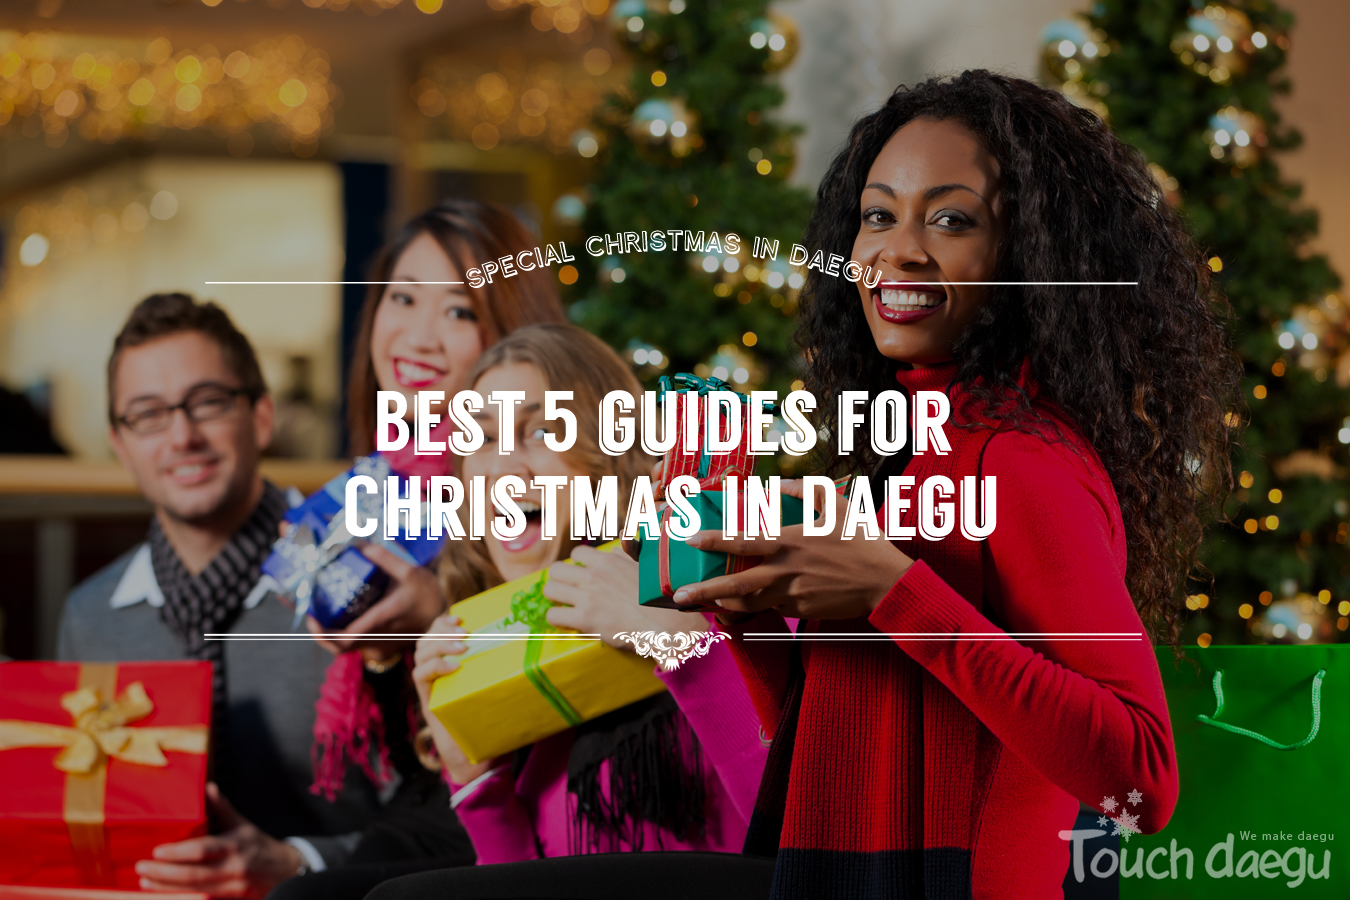 Best 5 guides for Christmas in Daegu